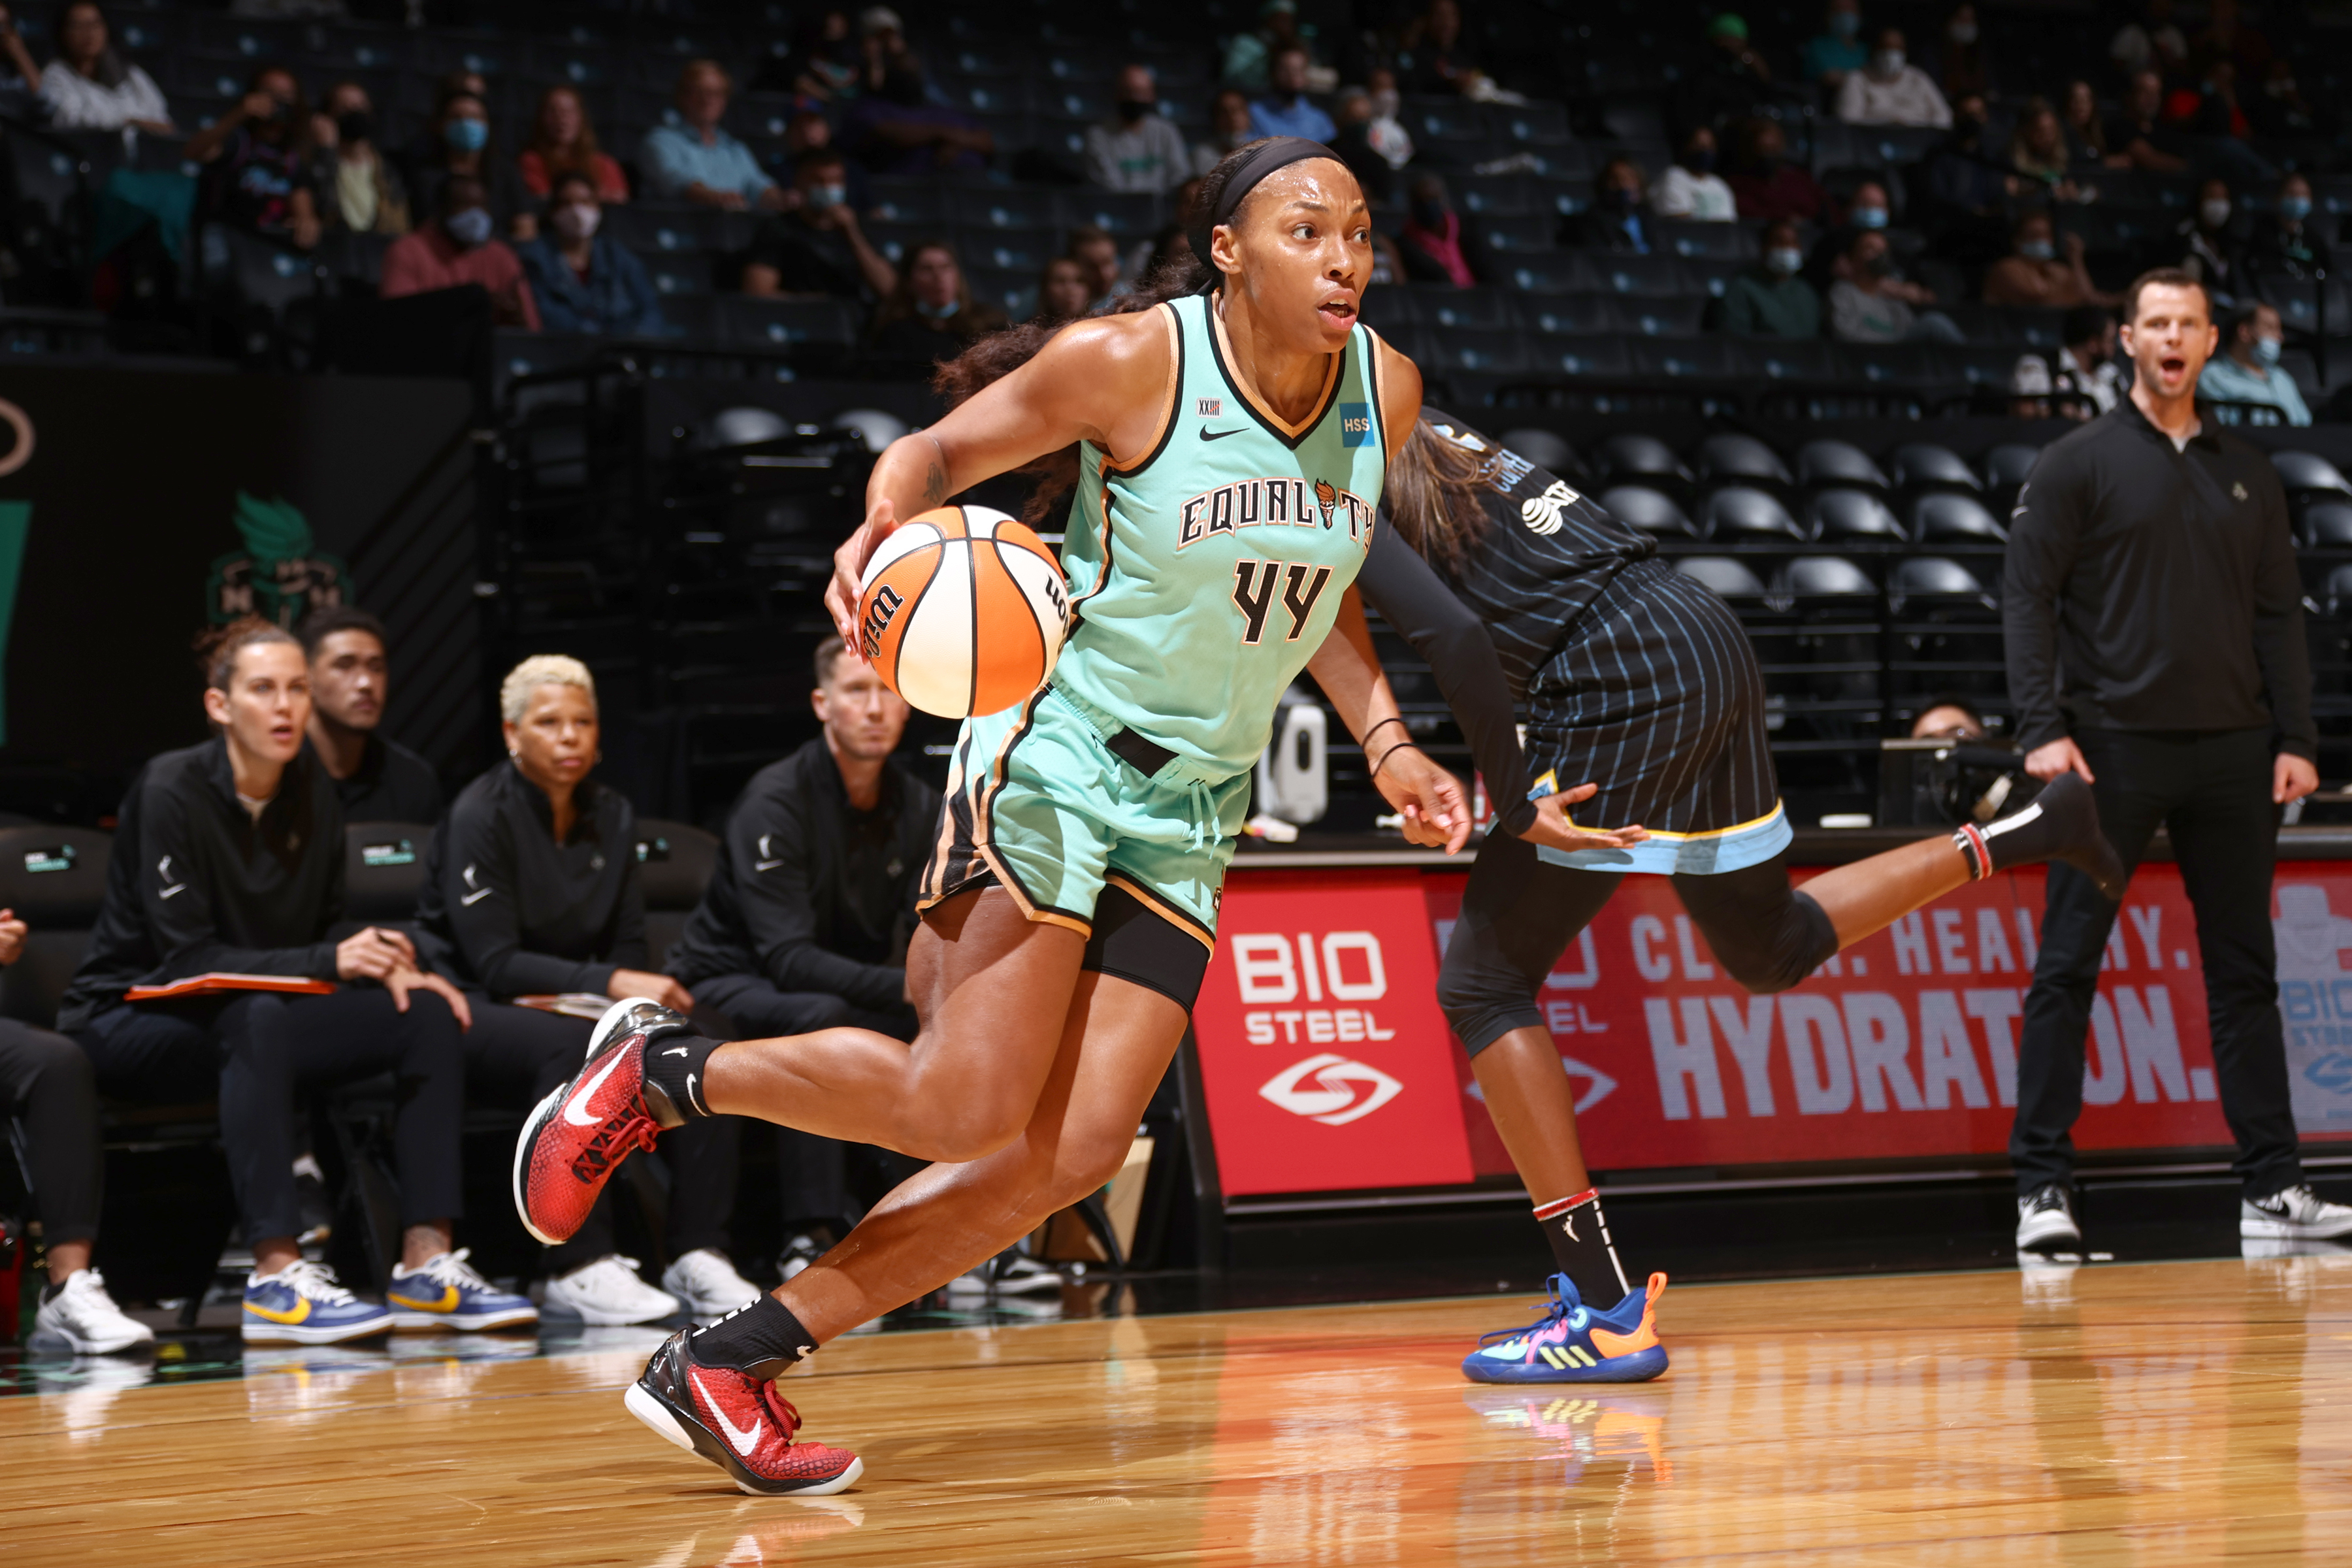 Betnijah Laney #44 of the New York Liberty dribbles the ball against the Chicago Sky on June 22, 2021 at Barclays Center in New York, NY.